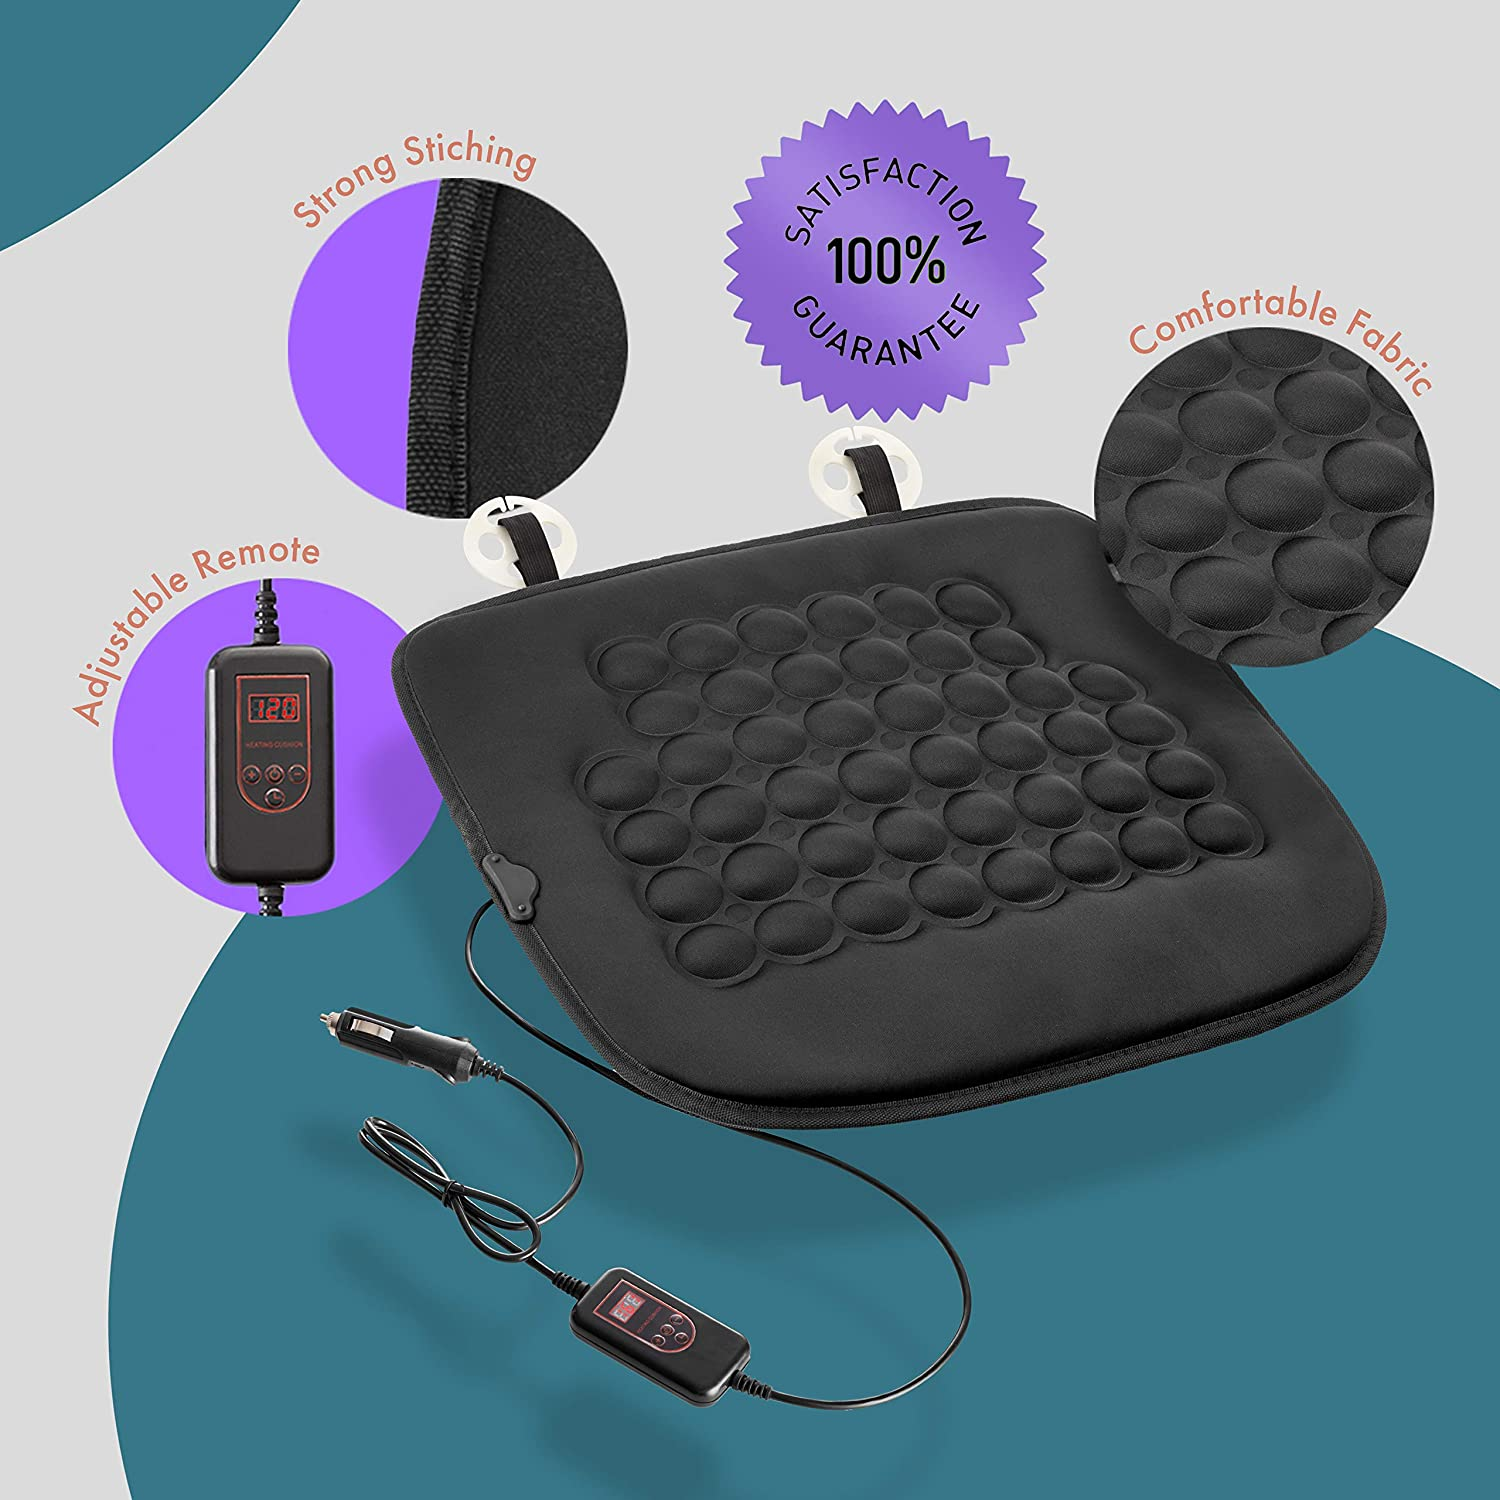 Fireproof NEW and IMPROVED 2019 Version 12V Heating Warmer Pad Cover Perfect for Cold Weather and Winter Driving Zone Tech Car Heated Seat Cover Cushion Hot Warmer